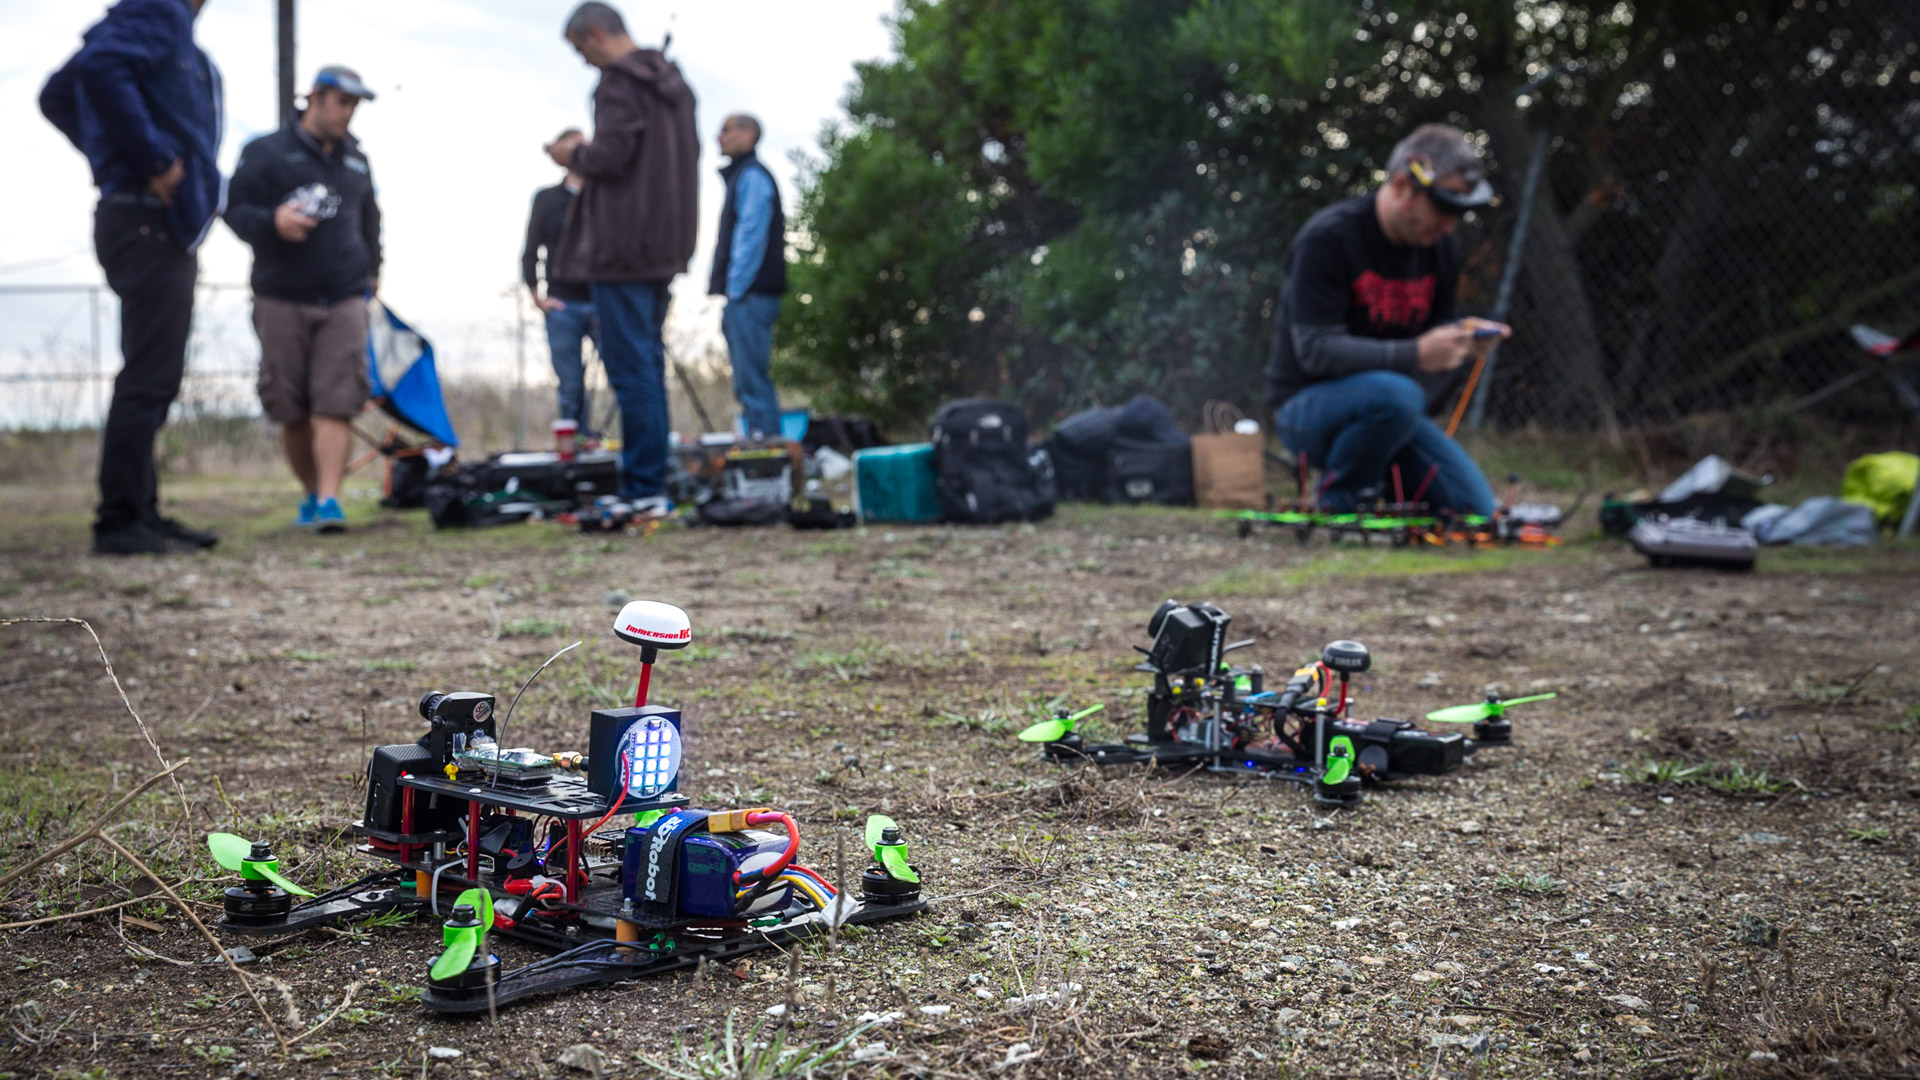 What You Should Know about Getting an FCC License for Flying FPV